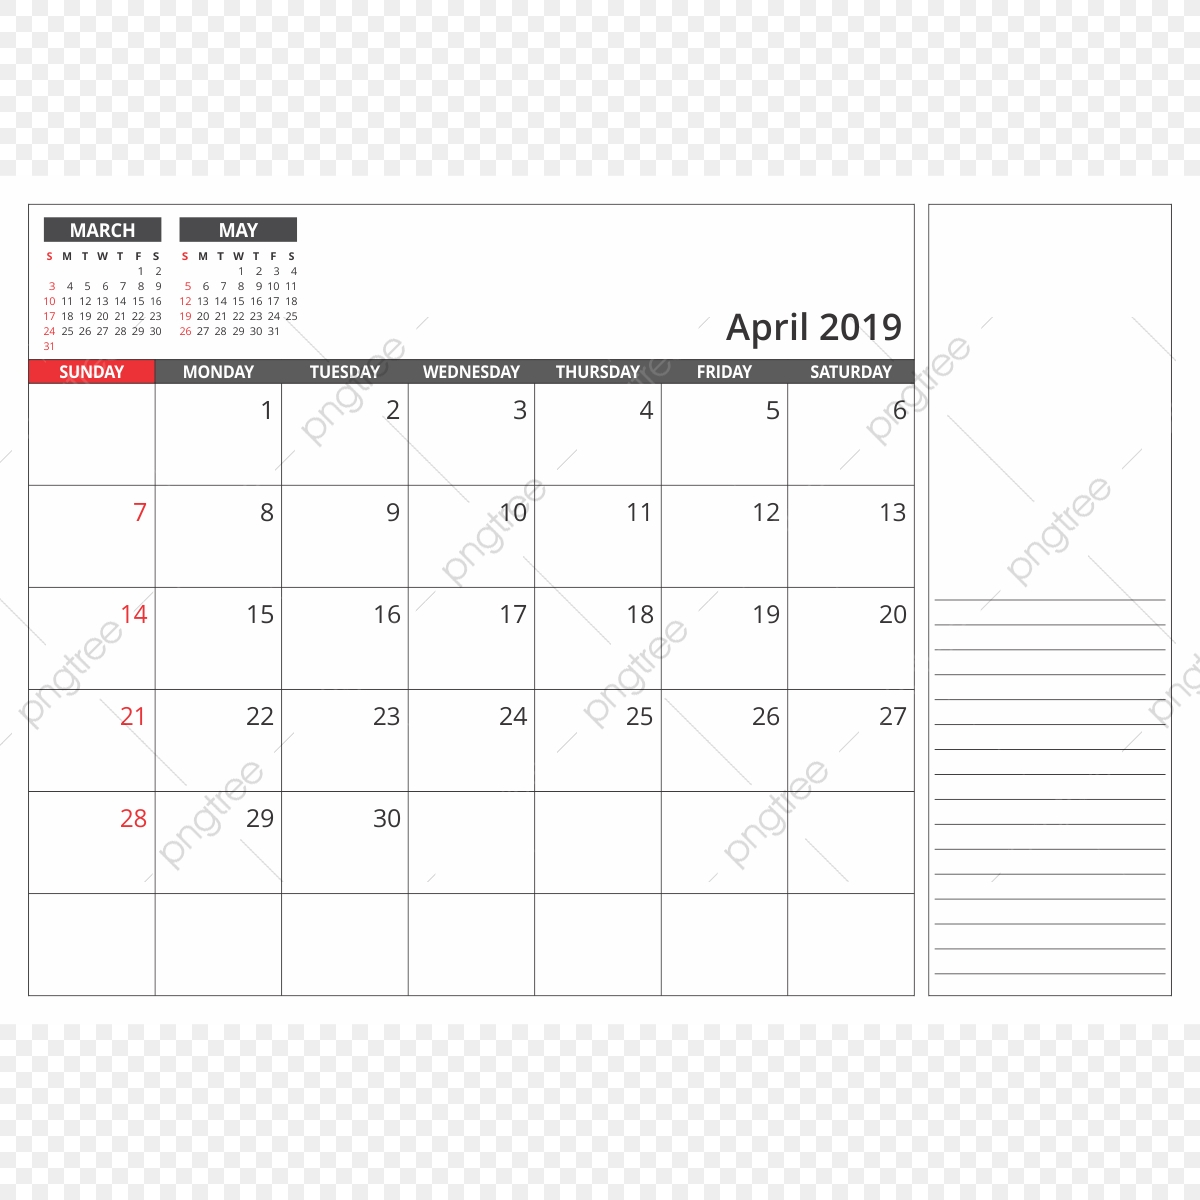 Desk Calendar April 2019 2019 Png Transparent Png And